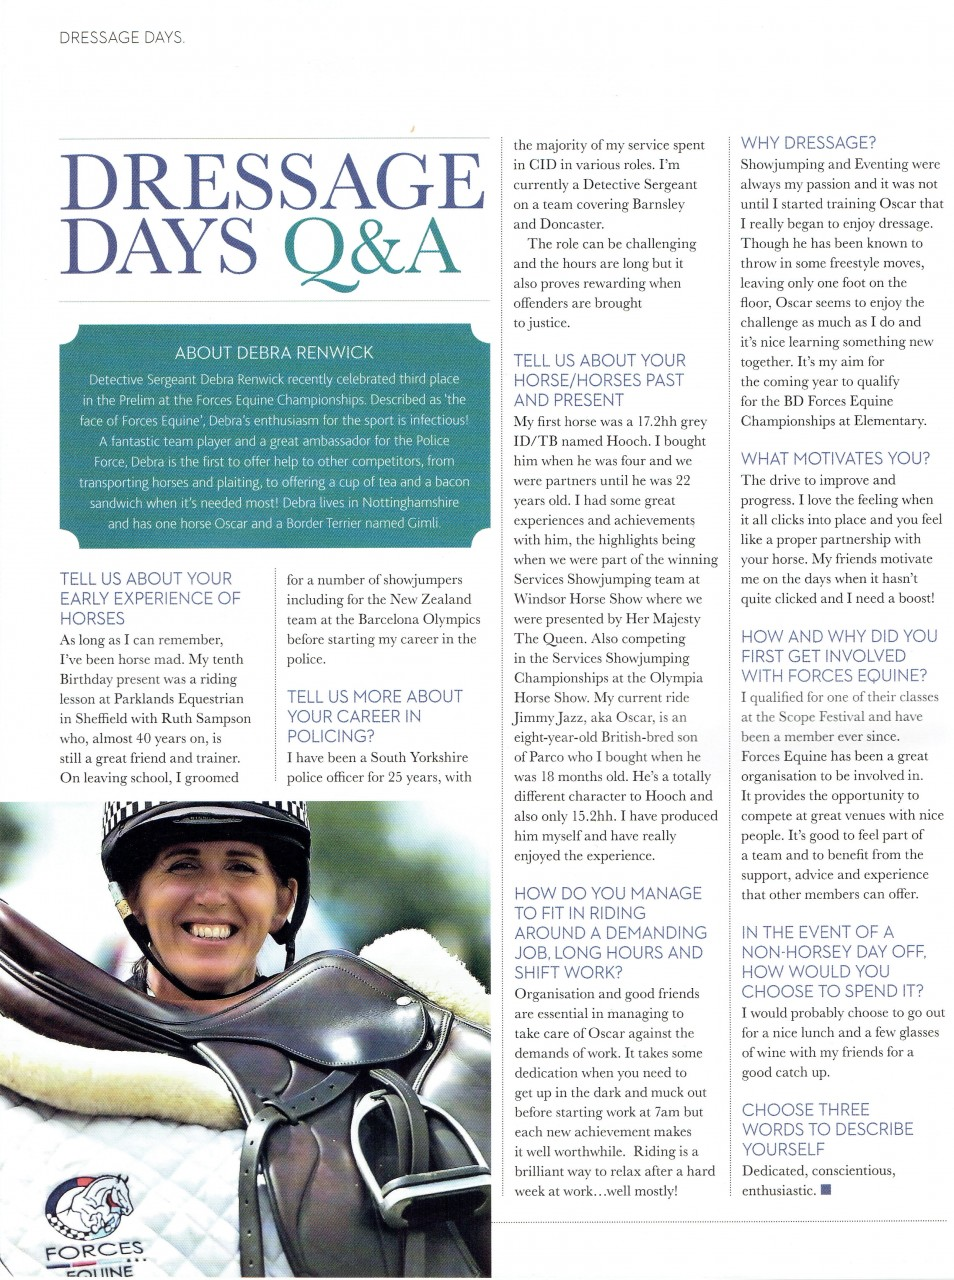 Fantastic write up in British Dressage magazine on our very own DS Debra Renwick